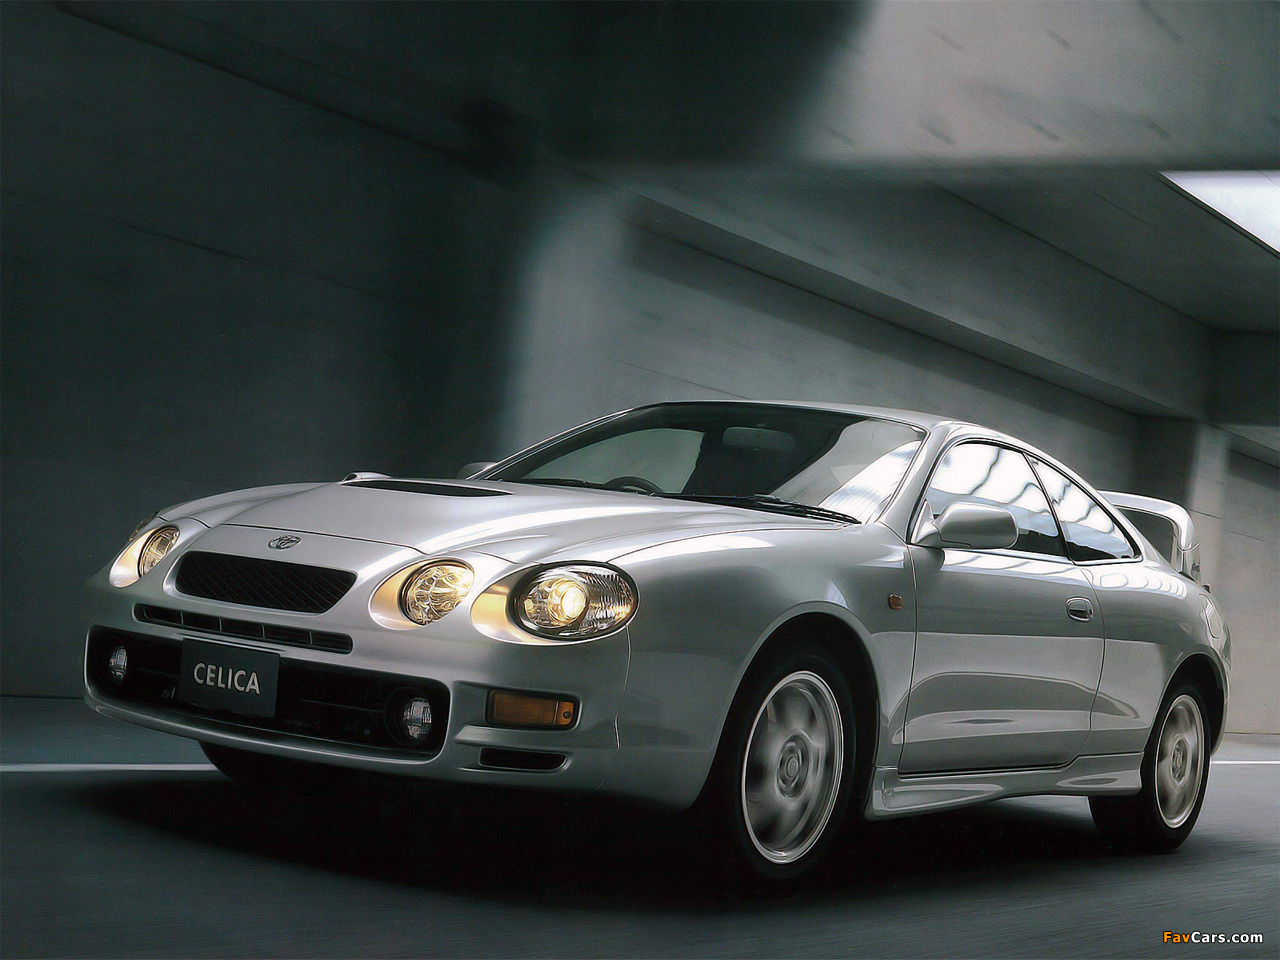 Wallpapers of Toyota Celica GT Four 199499 1280 x 960 1280x960